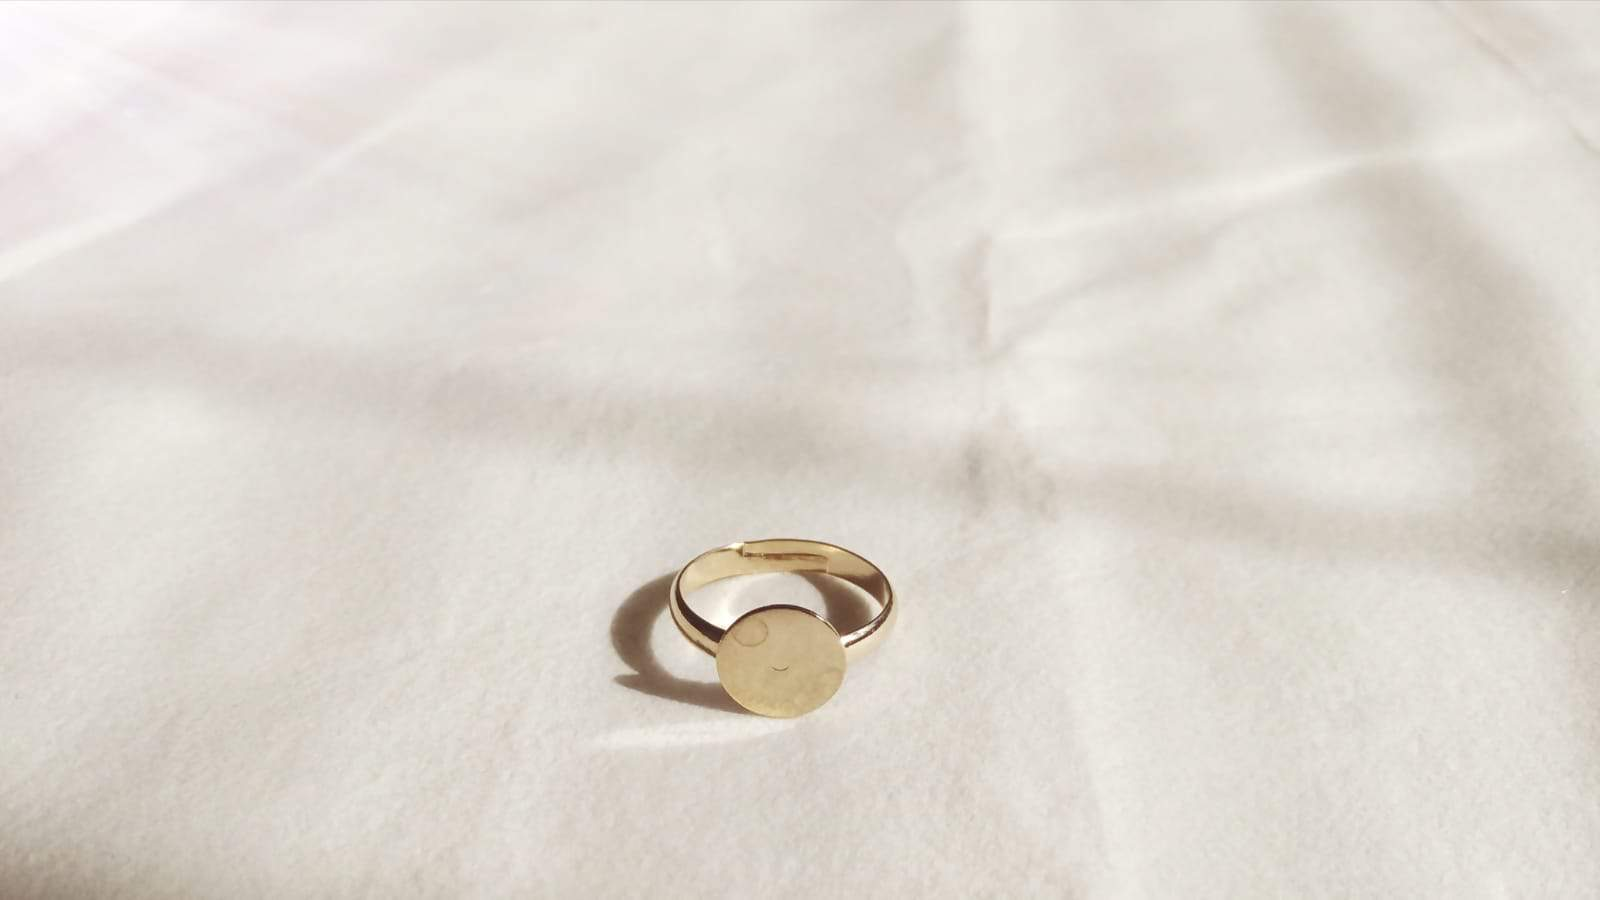 Ring base 20mm - Champagne